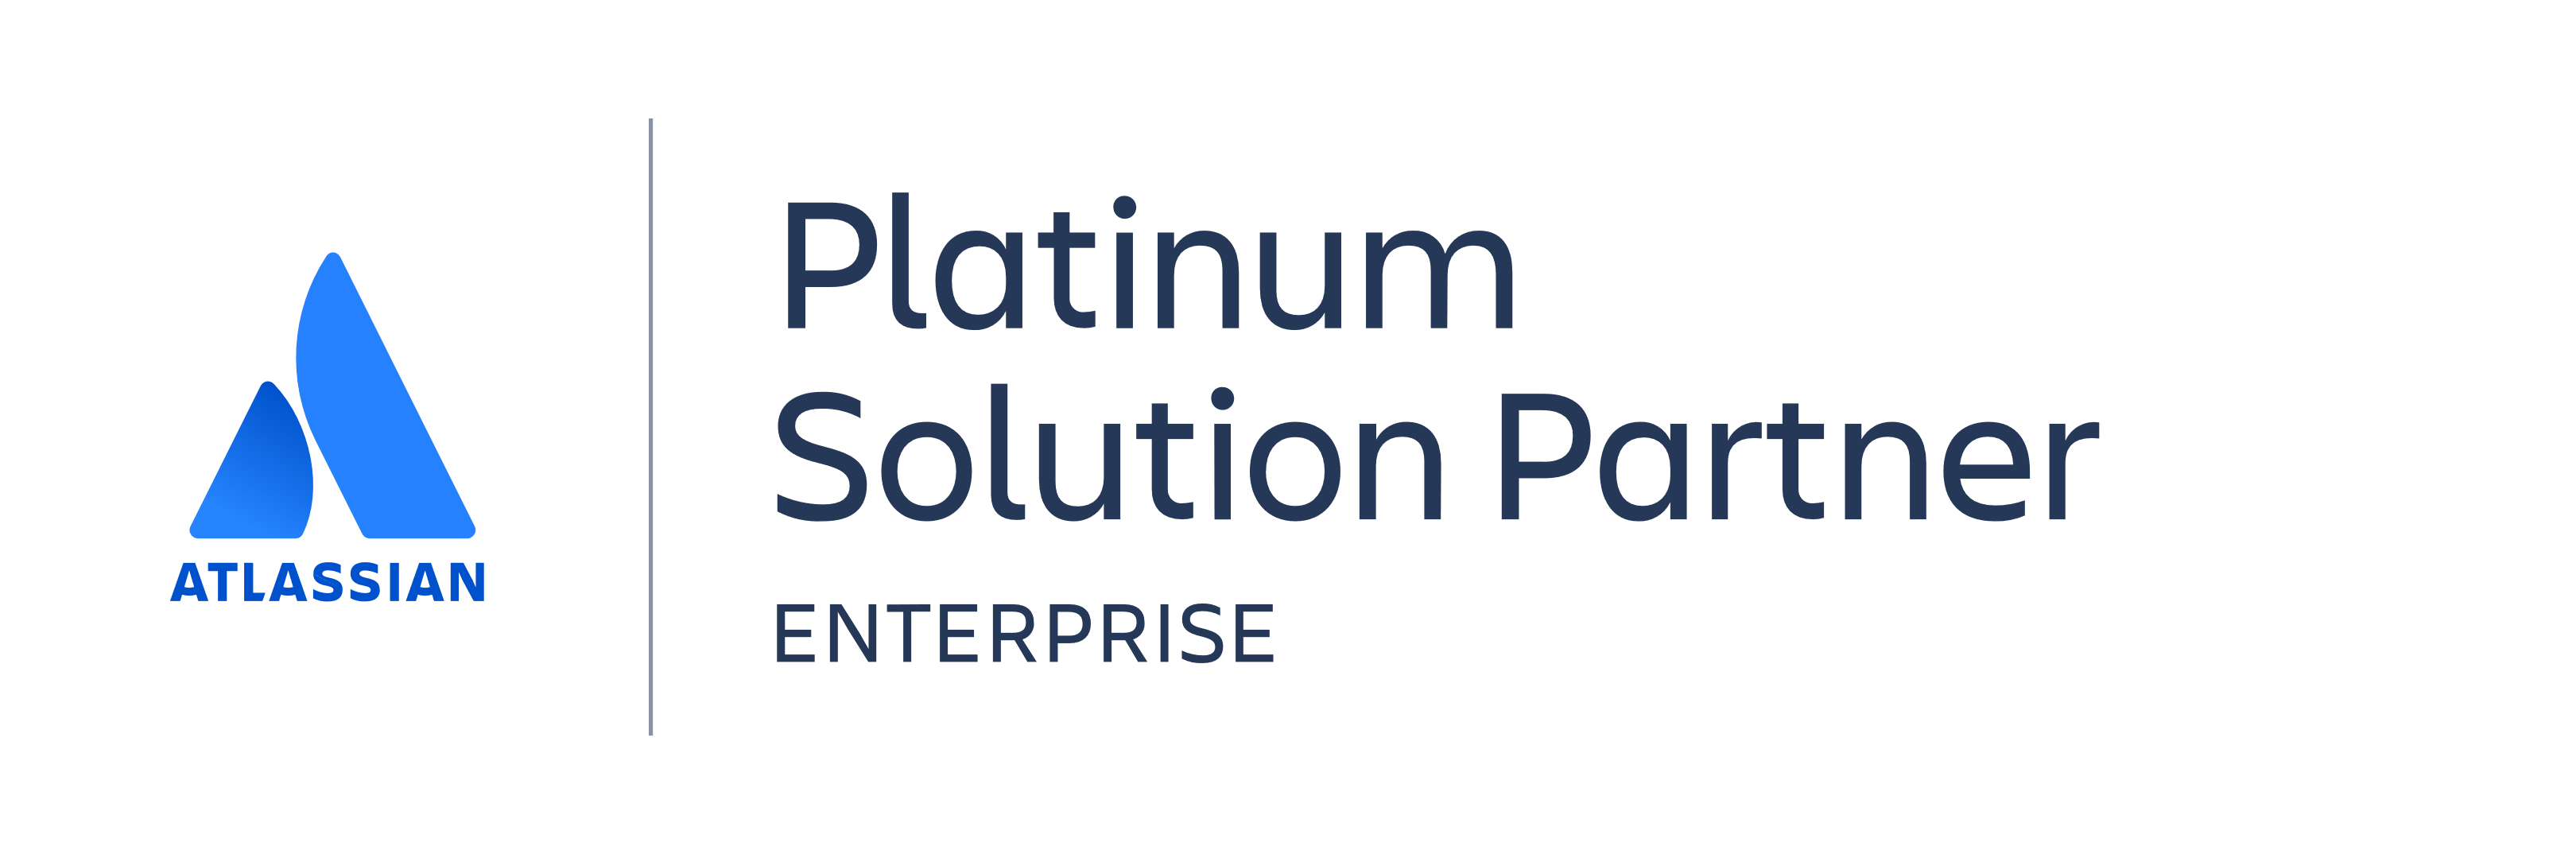 Atlassian-Platinum-Partner-Solutions-Expert